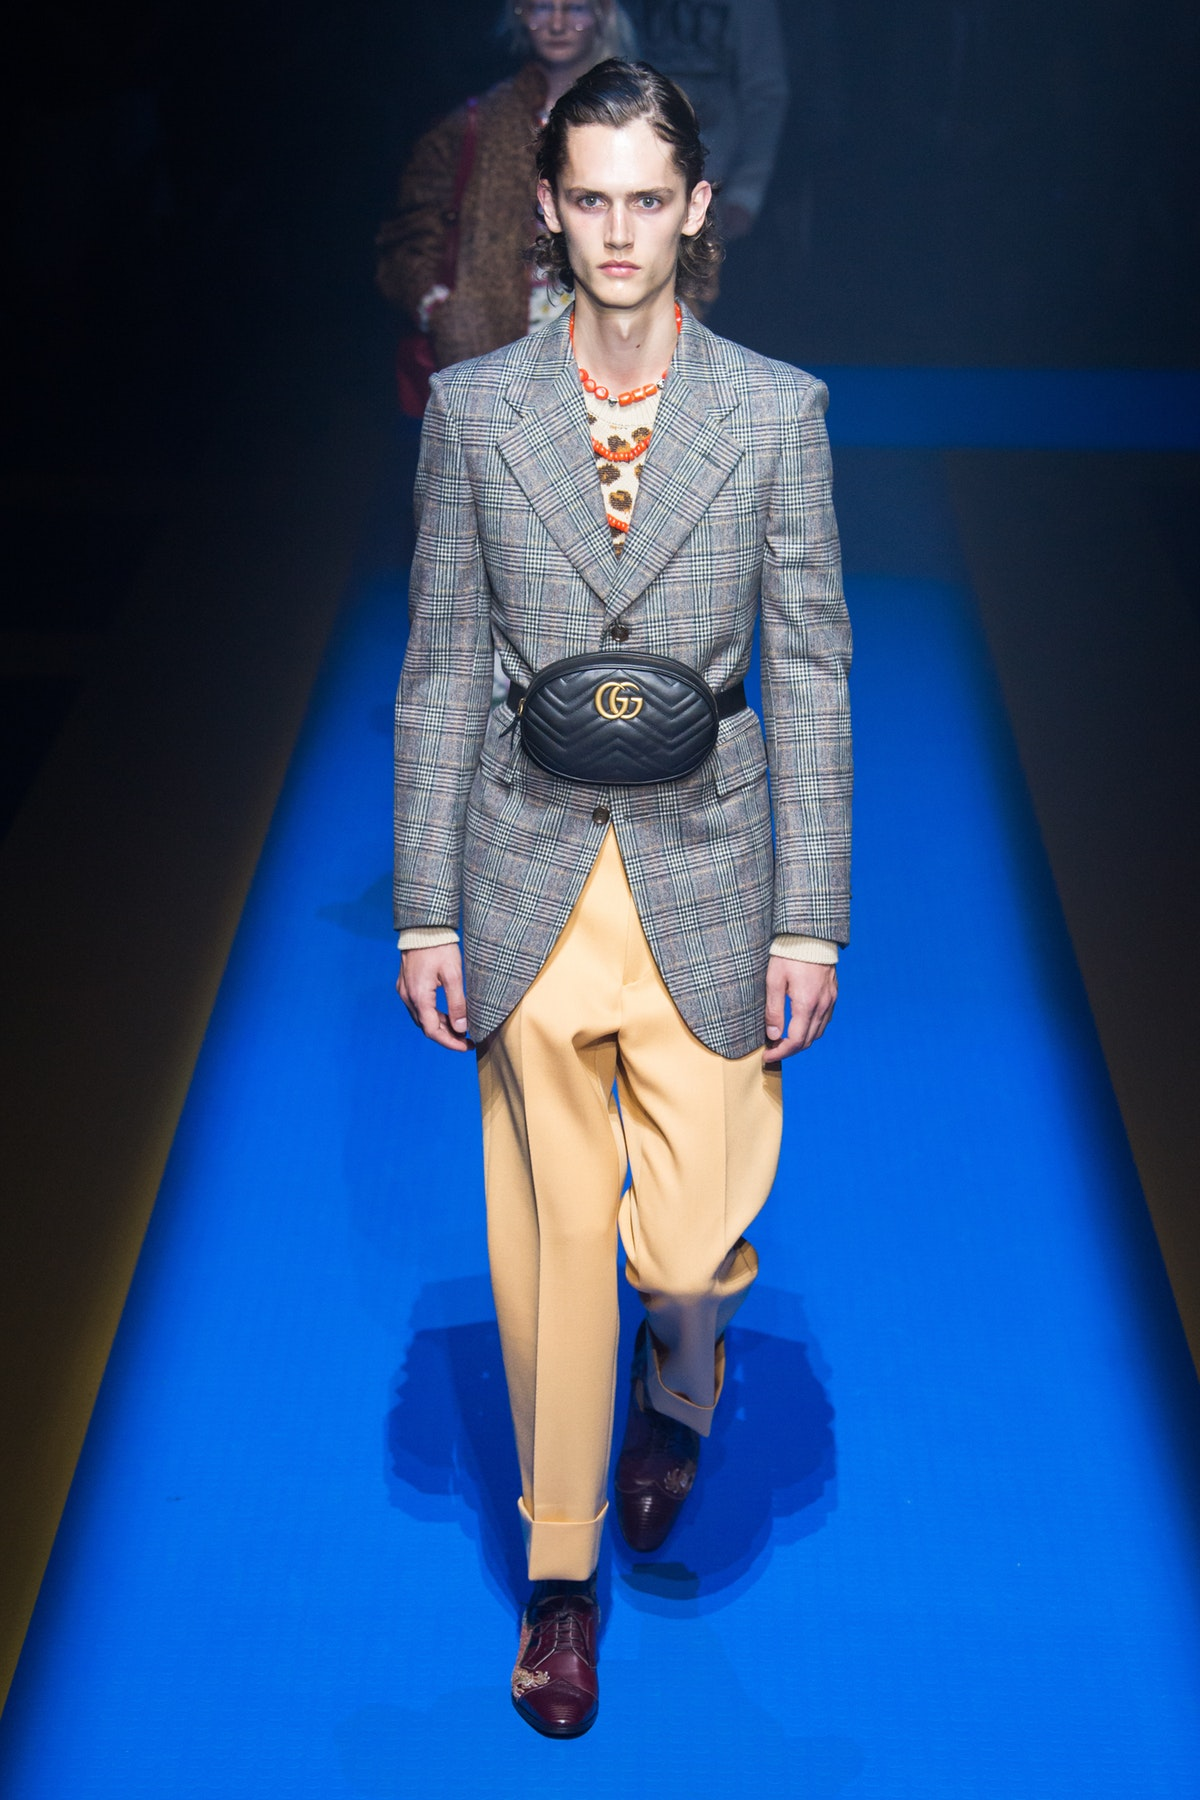 gucci_look_4_ready_to_wear_spring_2018.jpeg